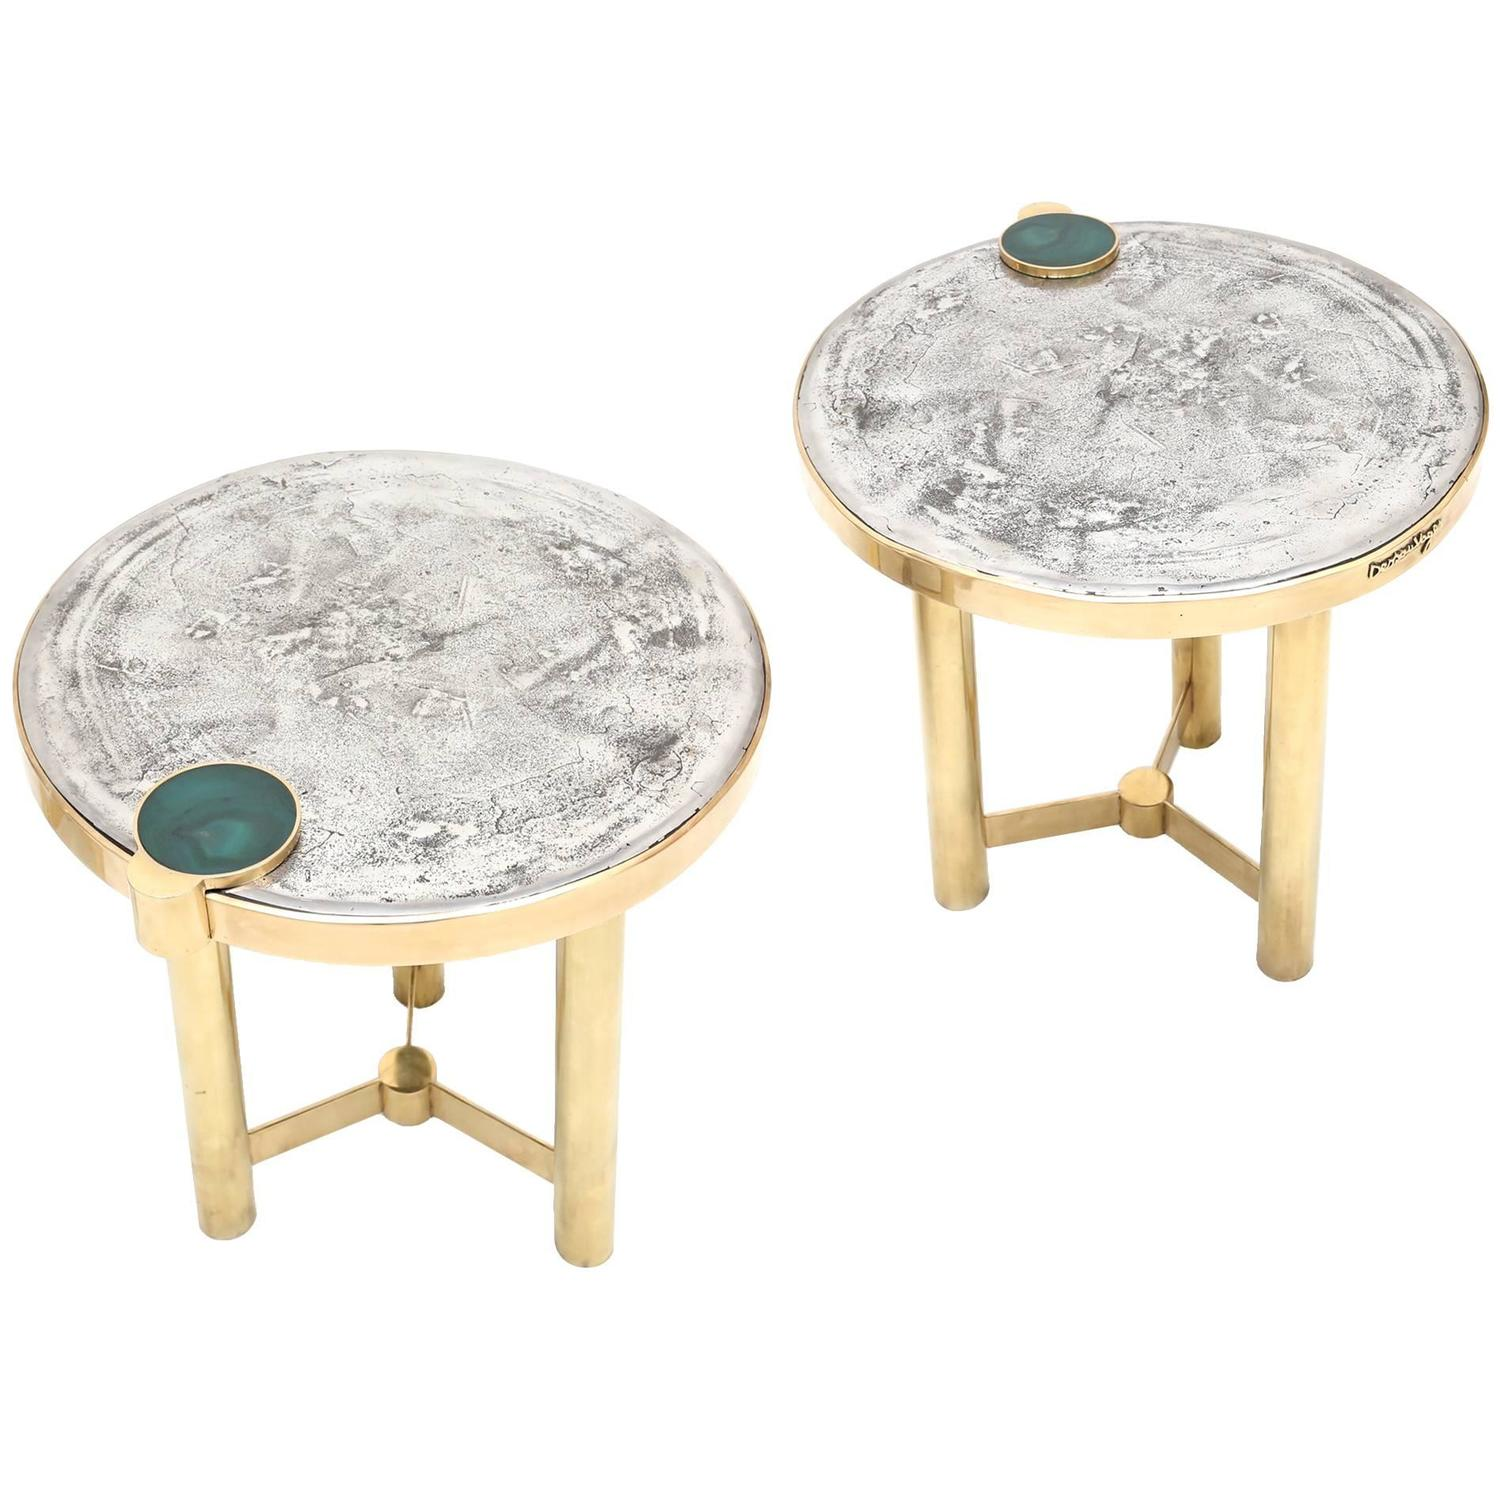 sc 1 st  1stDibs & Moonraker Side Table Set by Dessauvages at 1stdibs